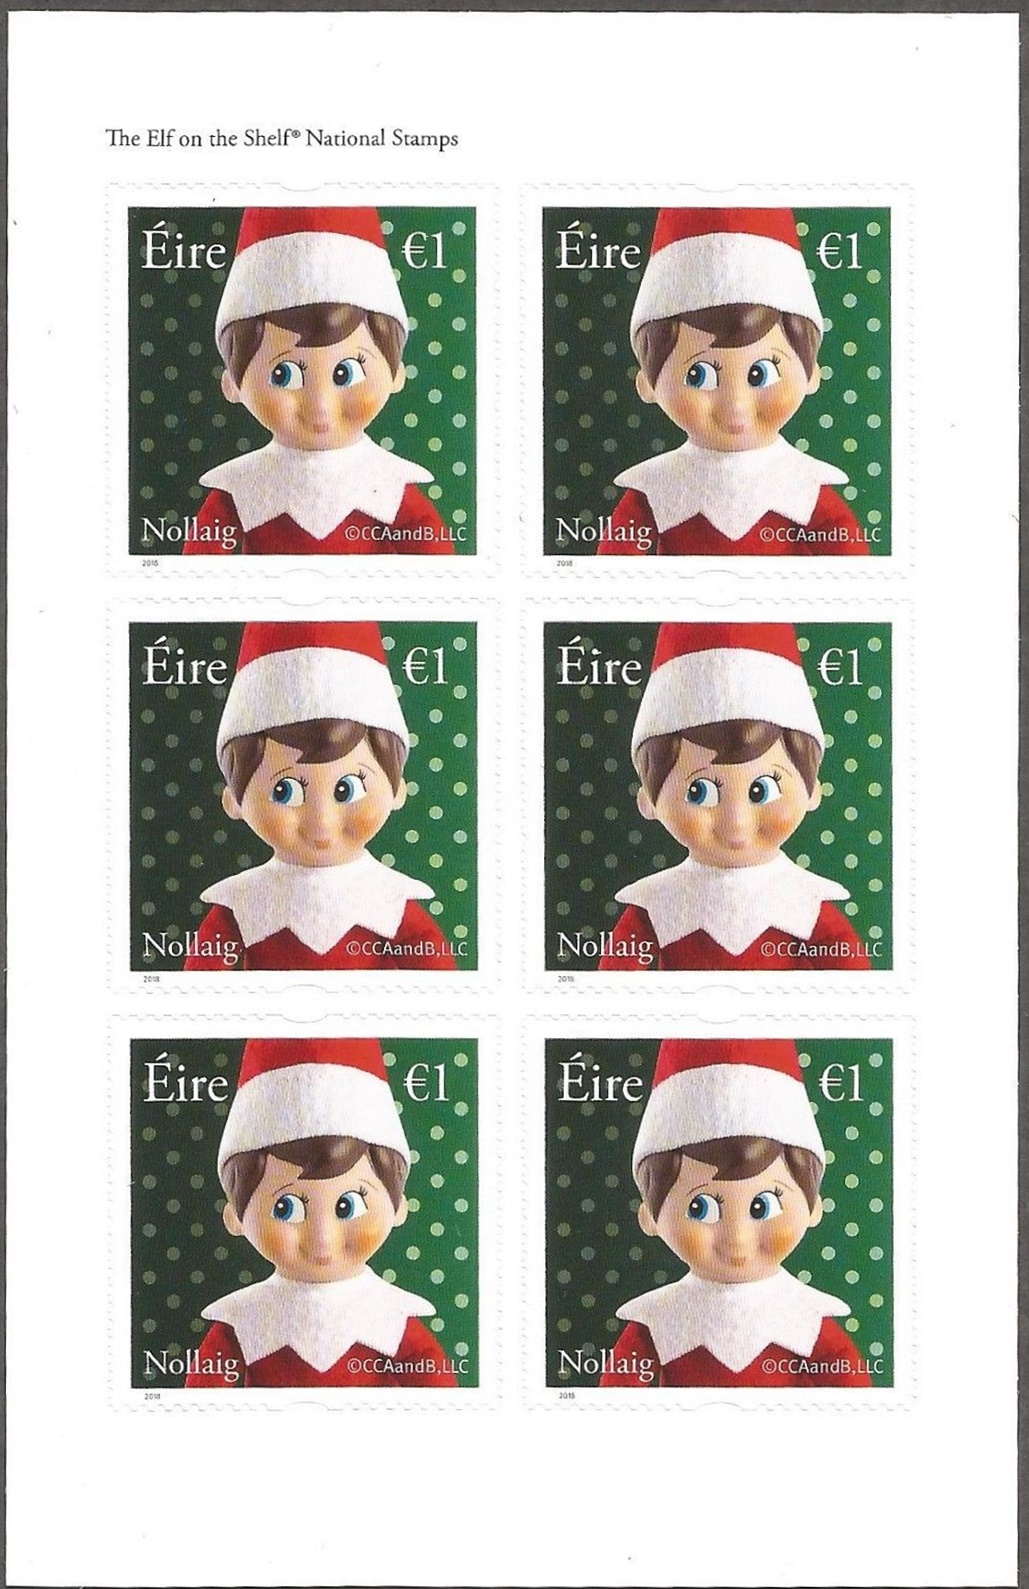 42660dc04c4 Ireland - The Elf on the Shelf (2018) sheetlet